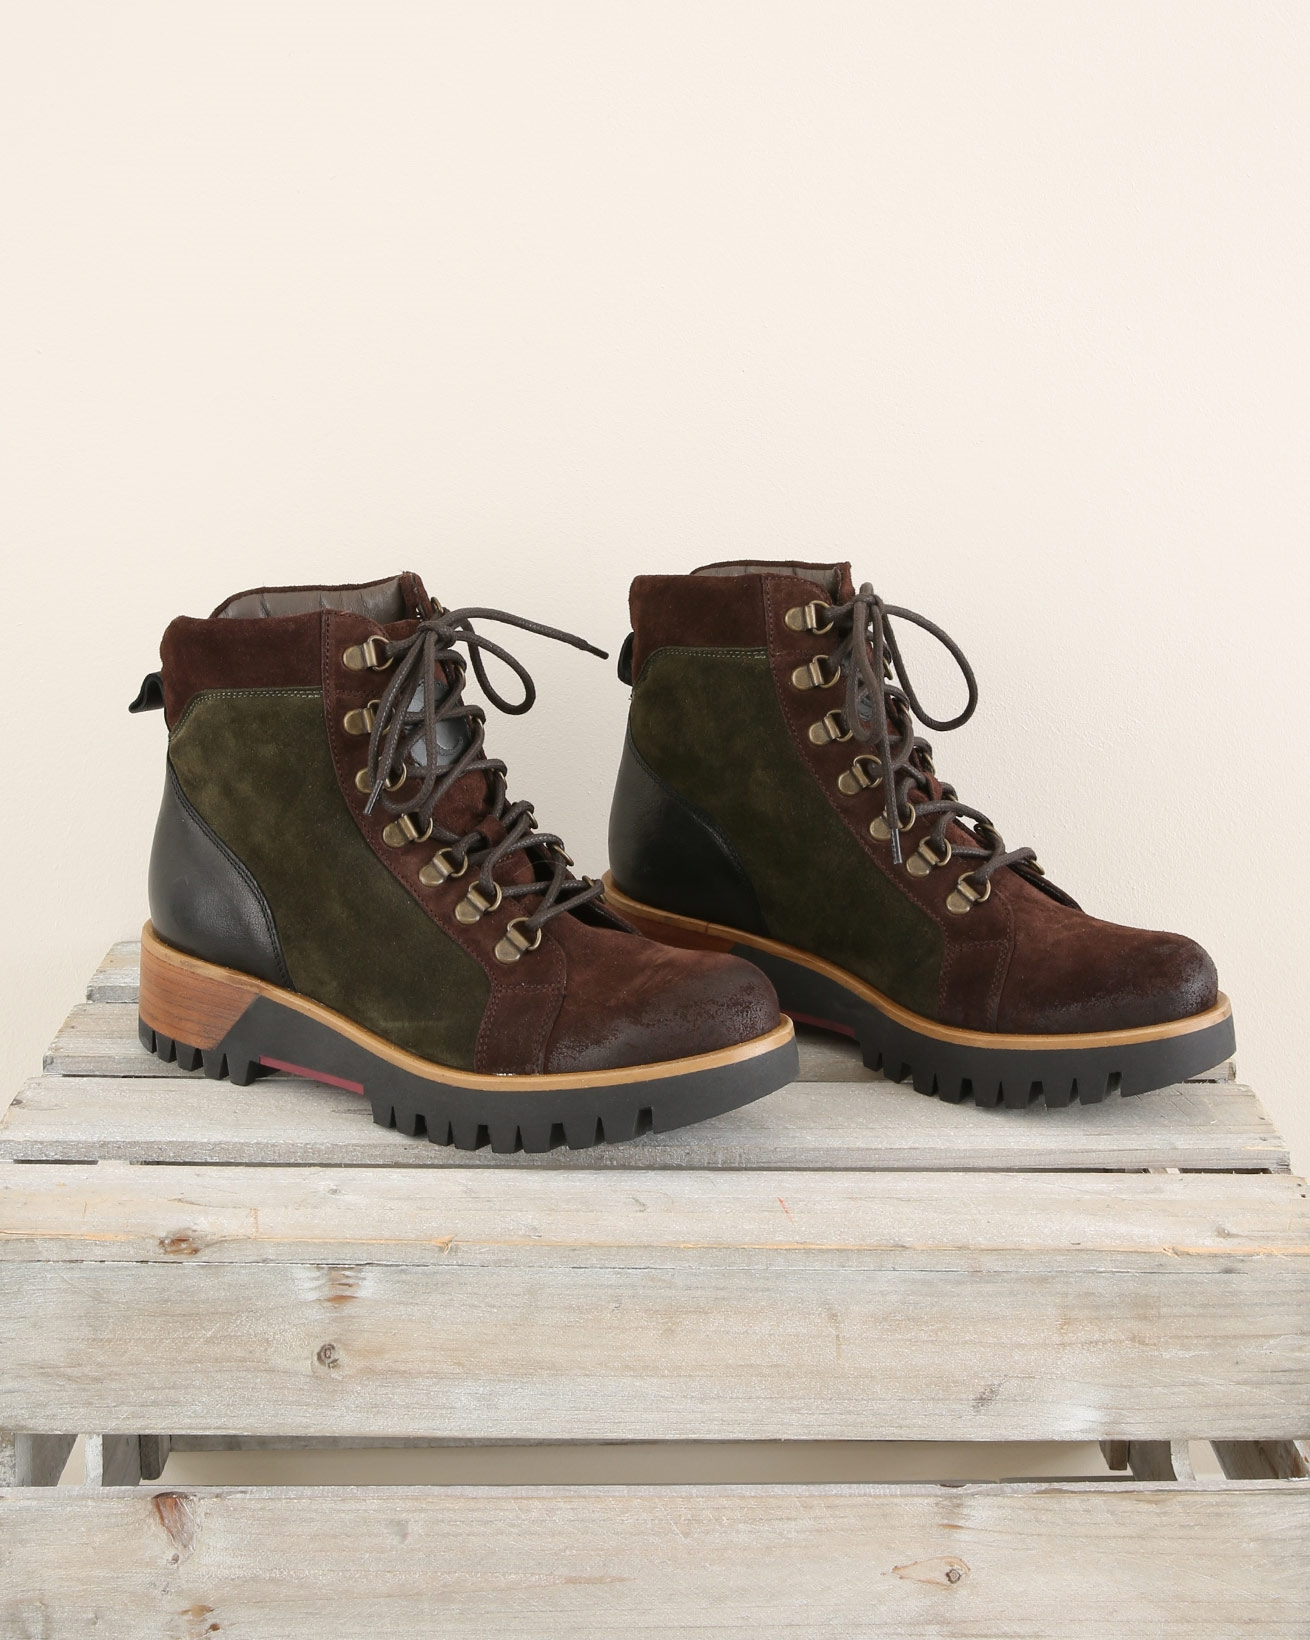 Colourblock Hiker Boot - Size 37 - Olive & Brown - 1711